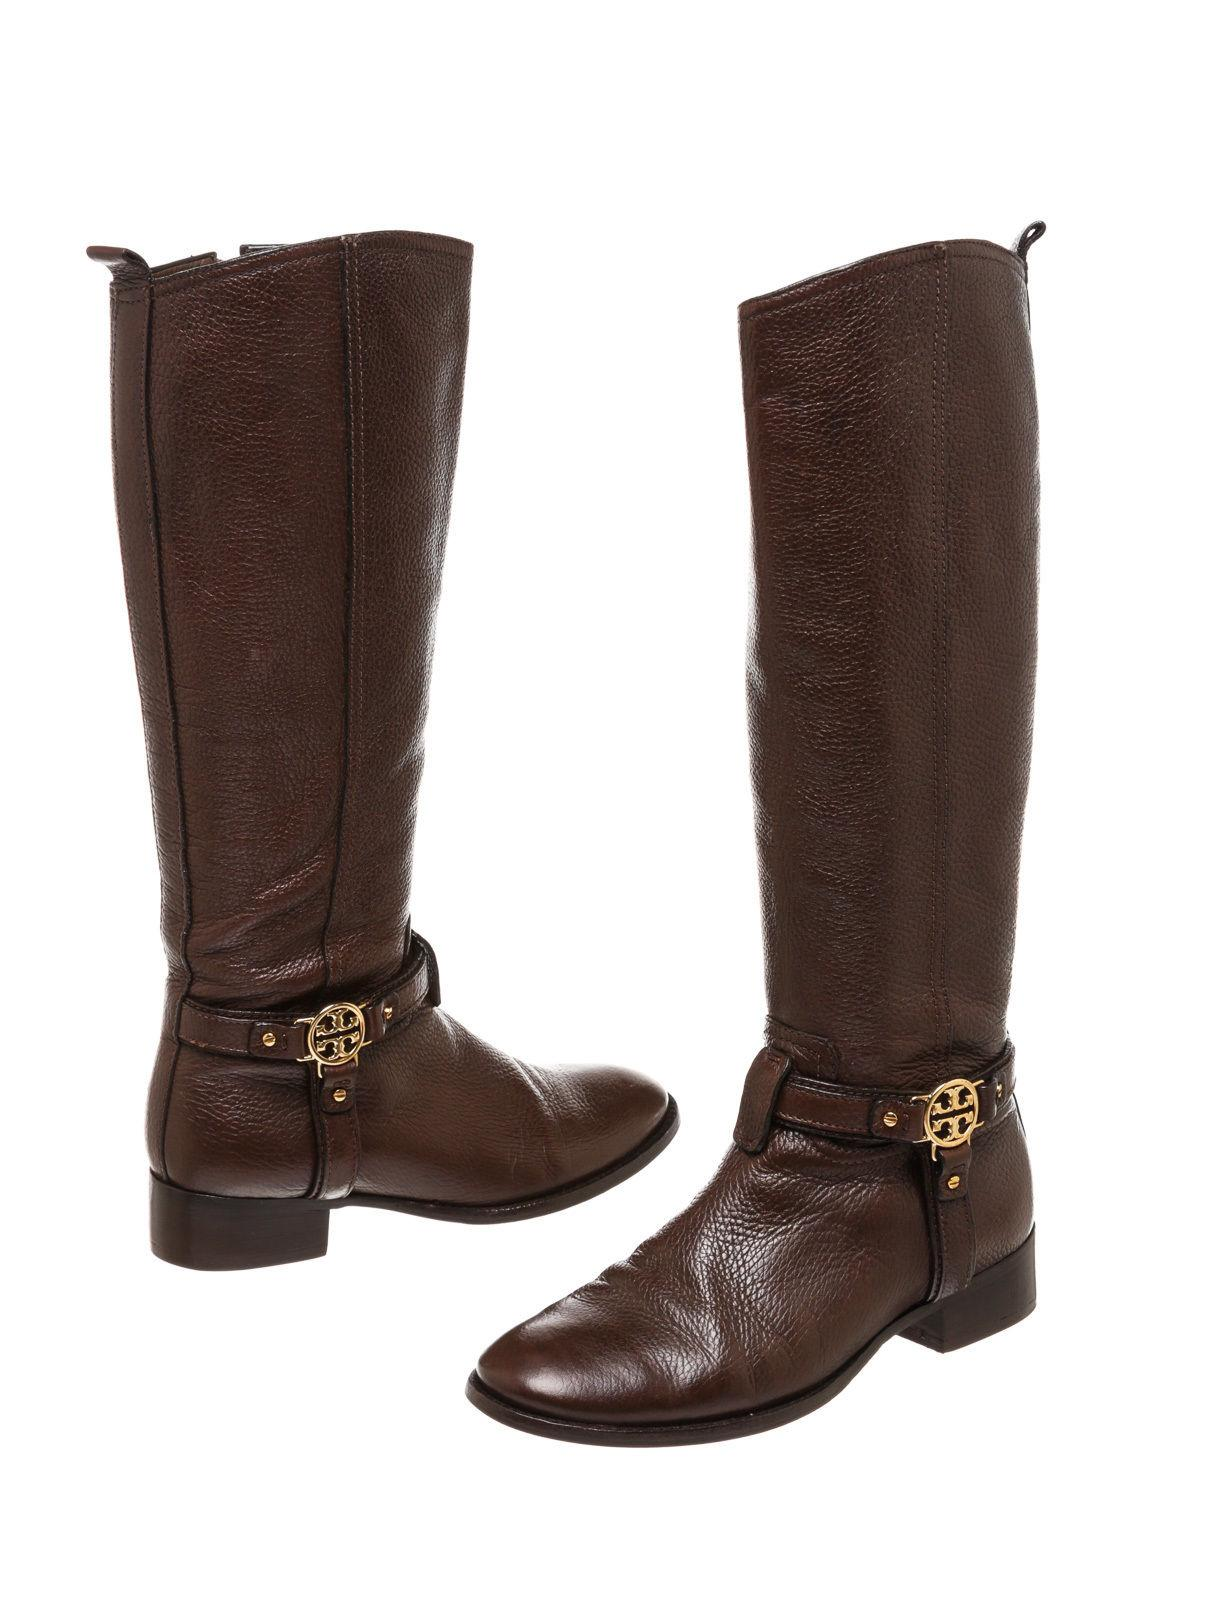 shopping online clearance largest supplier Tory Burch Leather Round-Toe Booties sale new styles sale with credit card VyInH4Aq